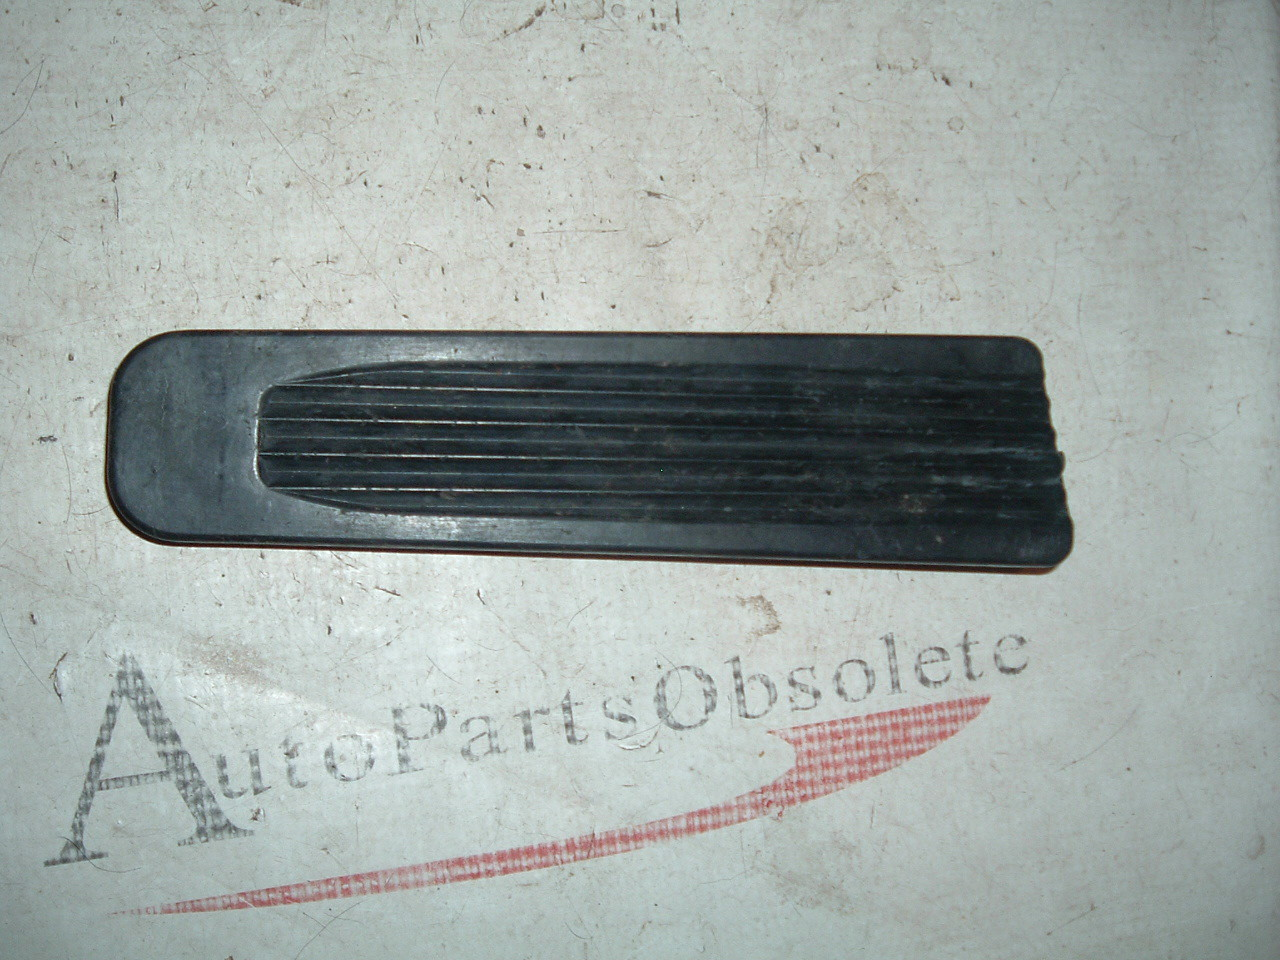 1955 56 Dodge Chrysler Plymouth gas / accelerator pedal 1603118a (z 1603118a)